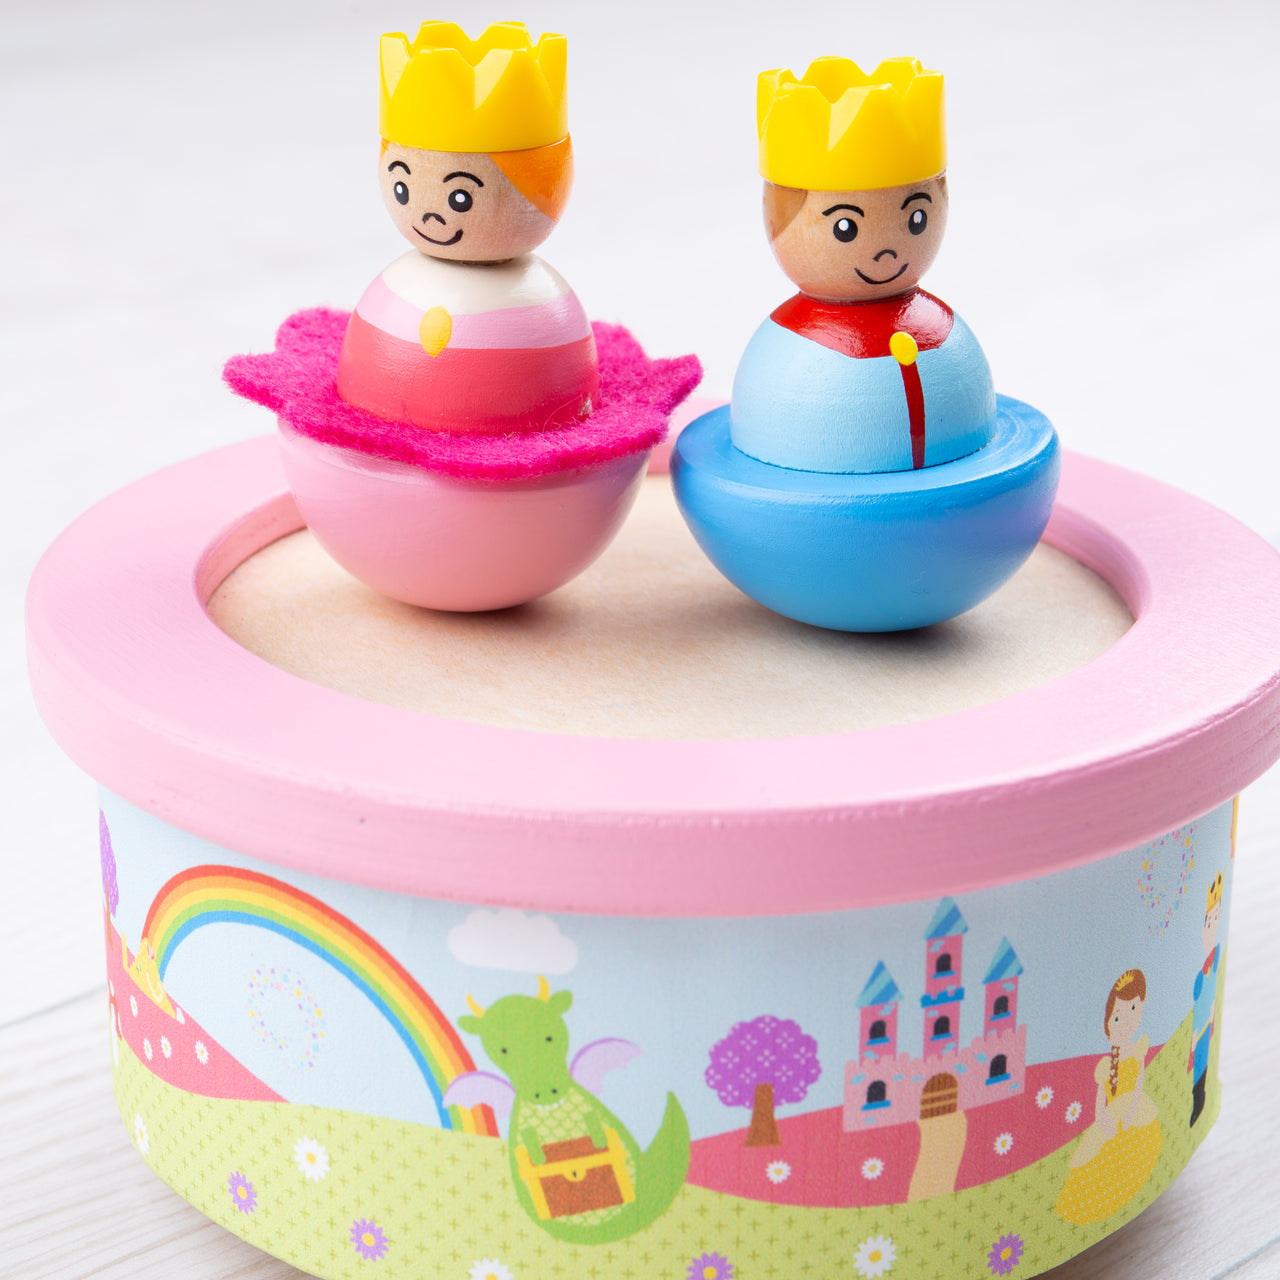 Wind them up and watch them dance with this fun wooden musical dancing toy from Bigjigs! This music box features a prince and princess who dance and spin on a mirrored base, providing hours of entertainment. T